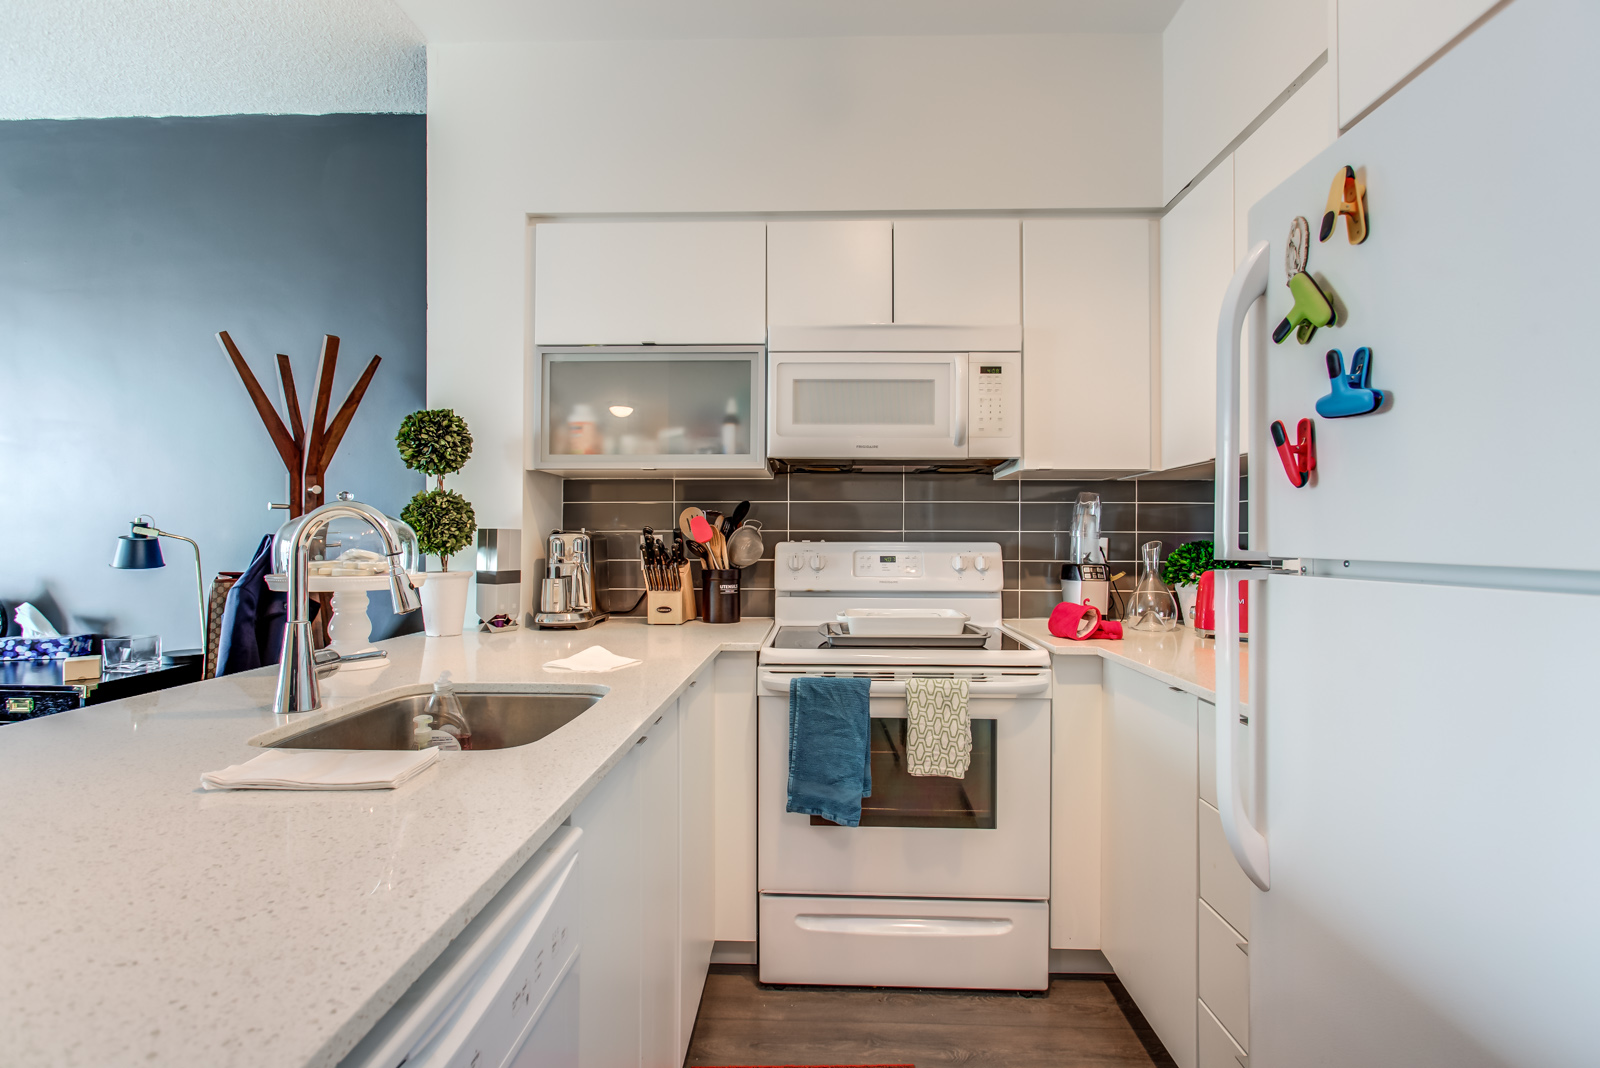 View of kitchen counters and appliances at 150 East Liberty St Unit 1616.